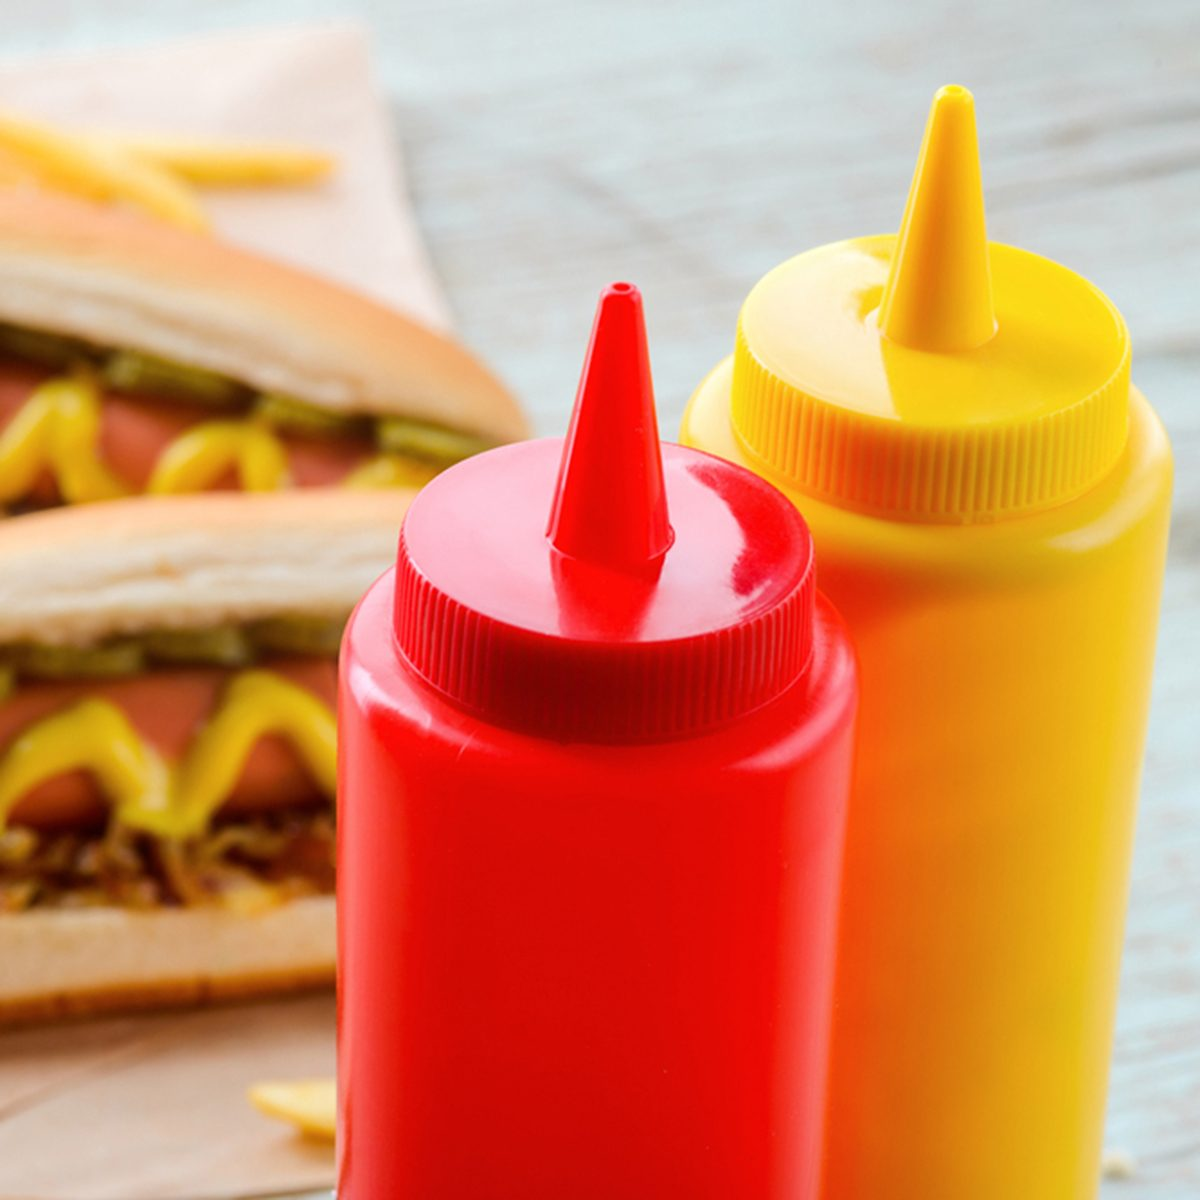 Ketchup and mustard bottles, close-up. Traditional hot dogs and potatoes on the background, baking paper. Western diet